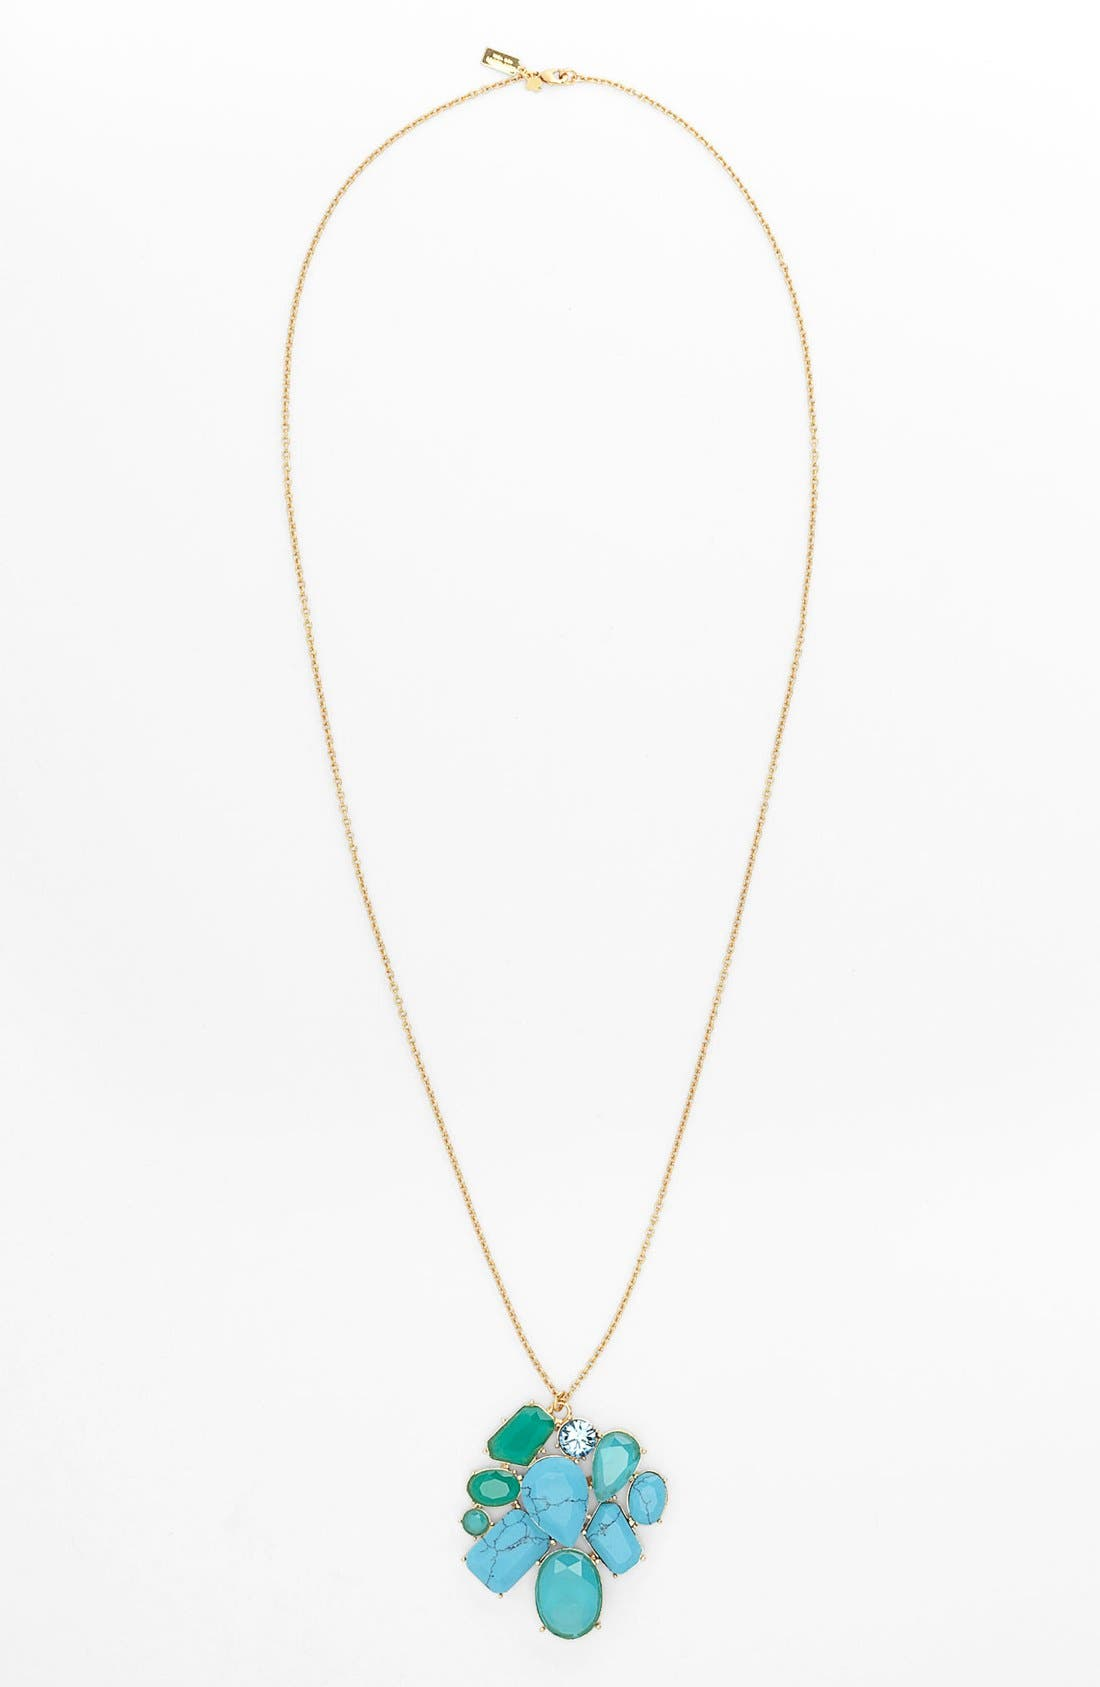 Alternate Image 1 Selected - kate spade new york 'crystal fiesta' long stone cluster pendant necklace